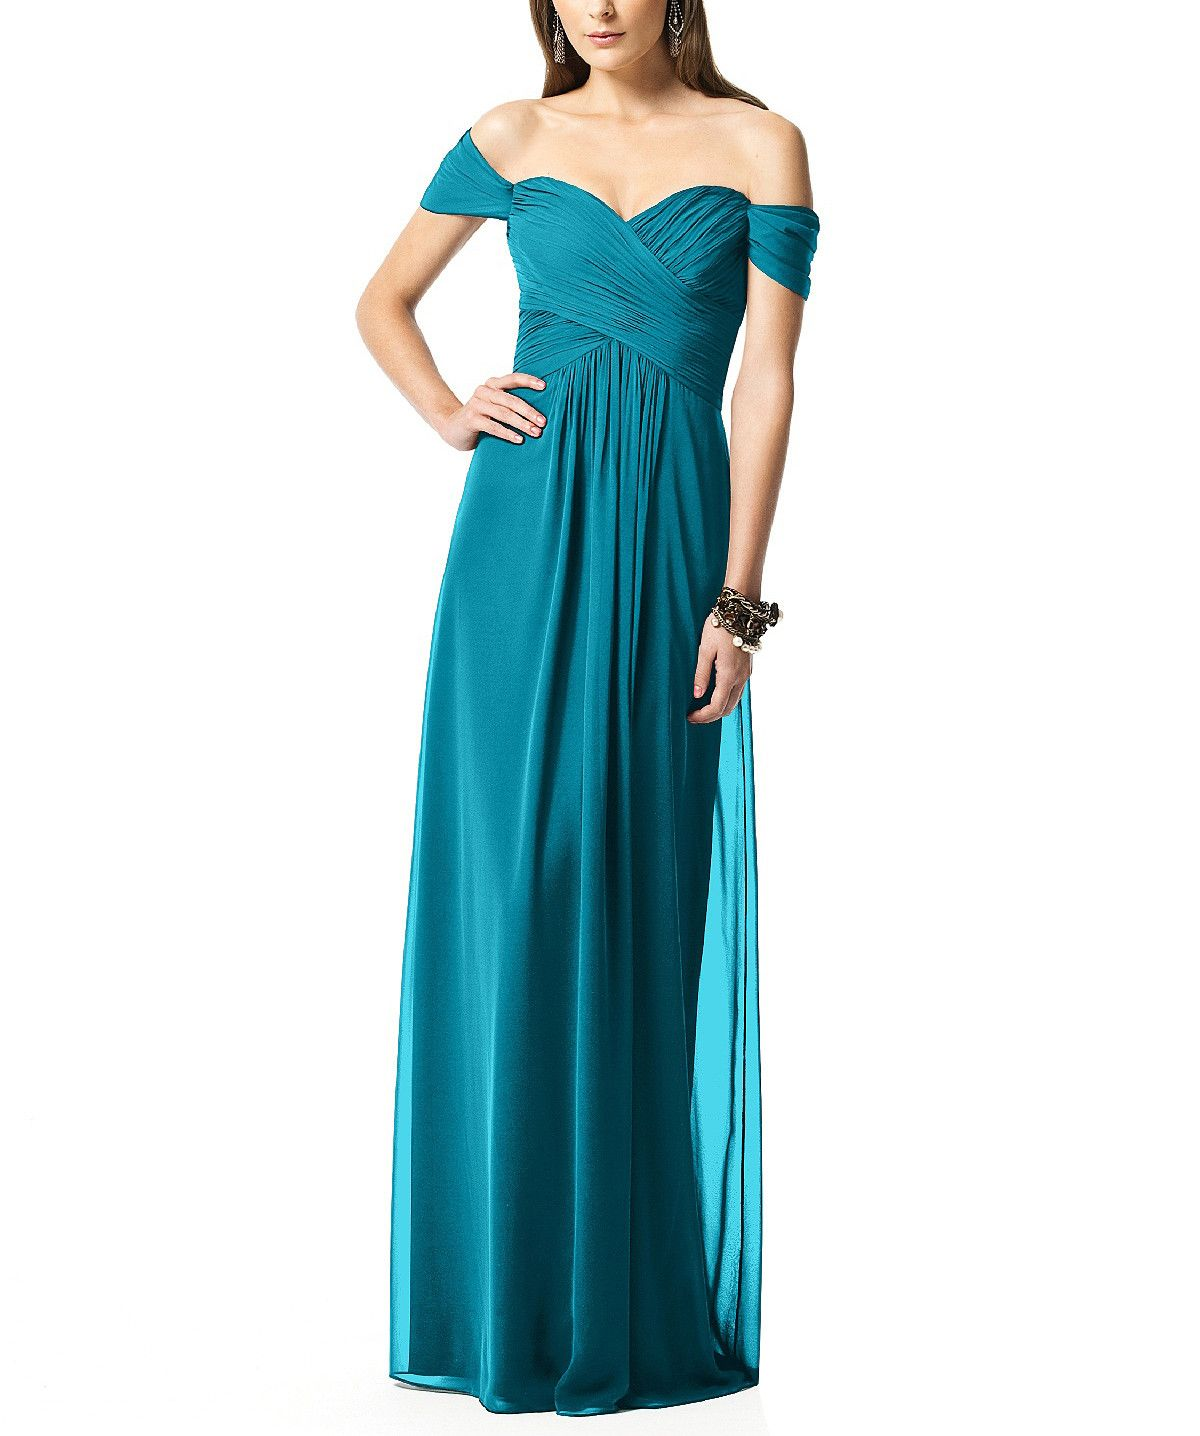 DescriptionDessy Collection 2844Full�length bridesmaid dressOff the shoulder sweetheart necklineCrisscross ruched bodiceShirred skirtLux chiffon�